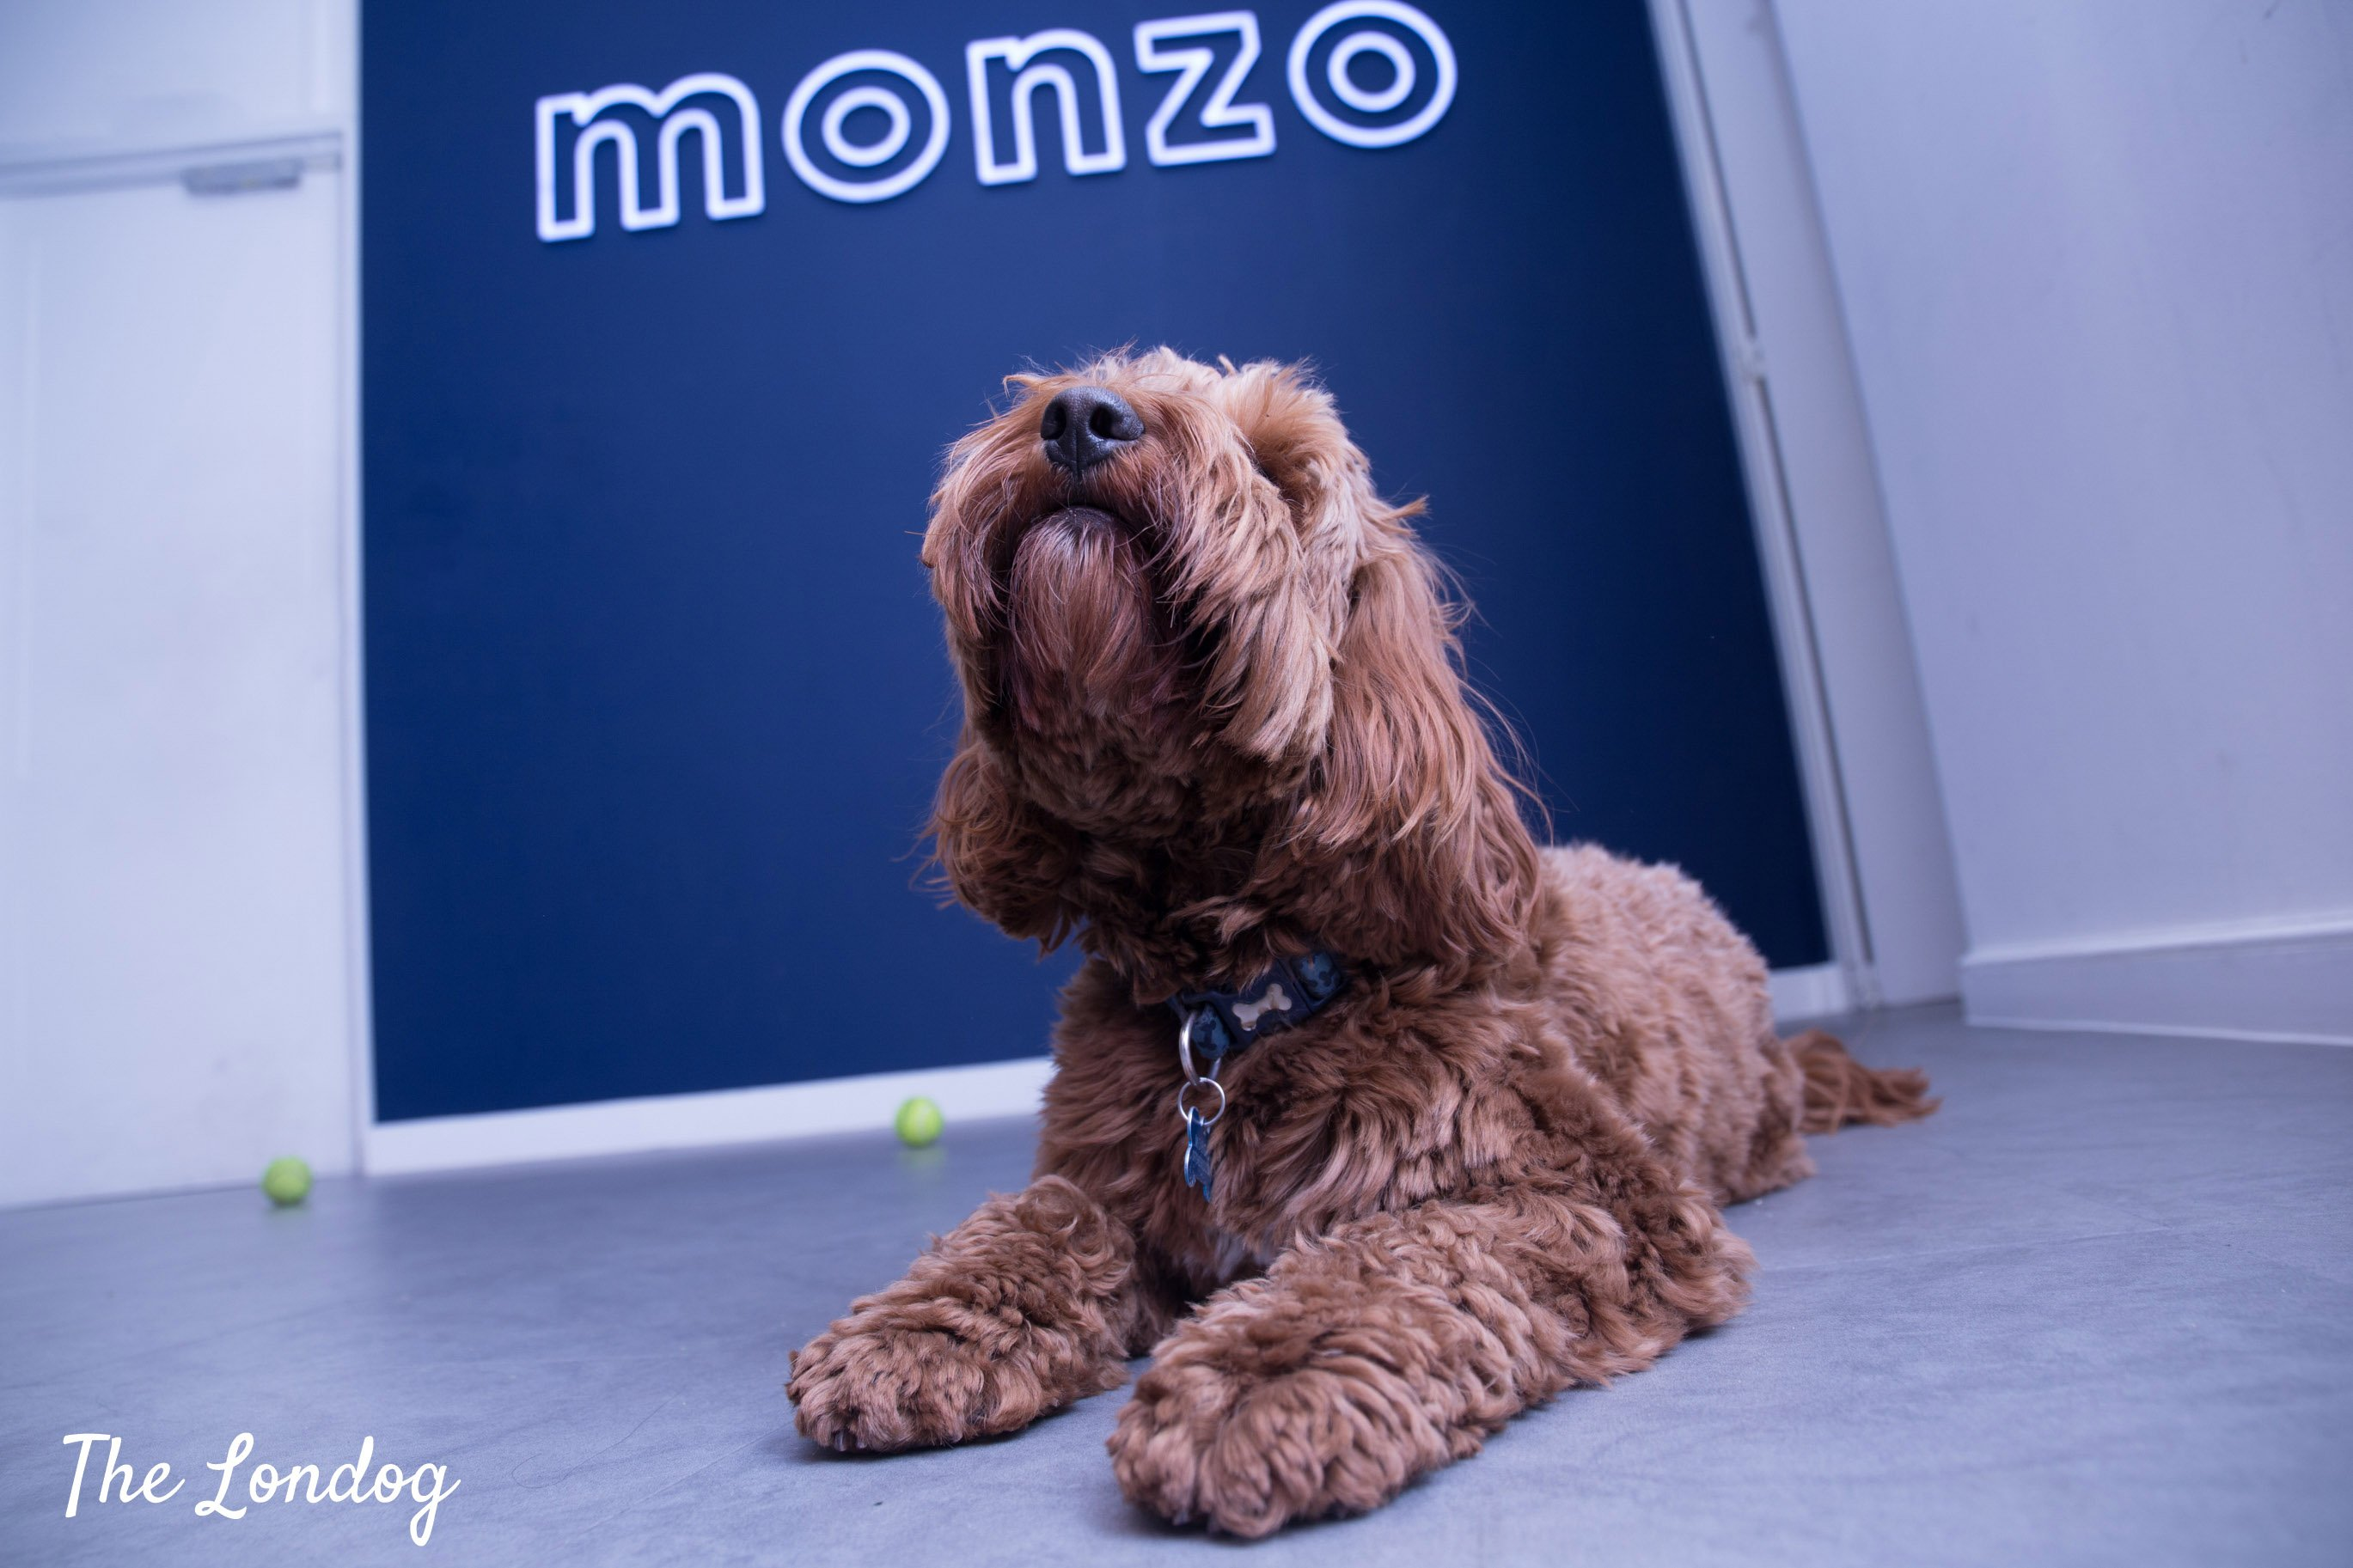 Cockapoo office dog in front of Monzo's logo on the wall